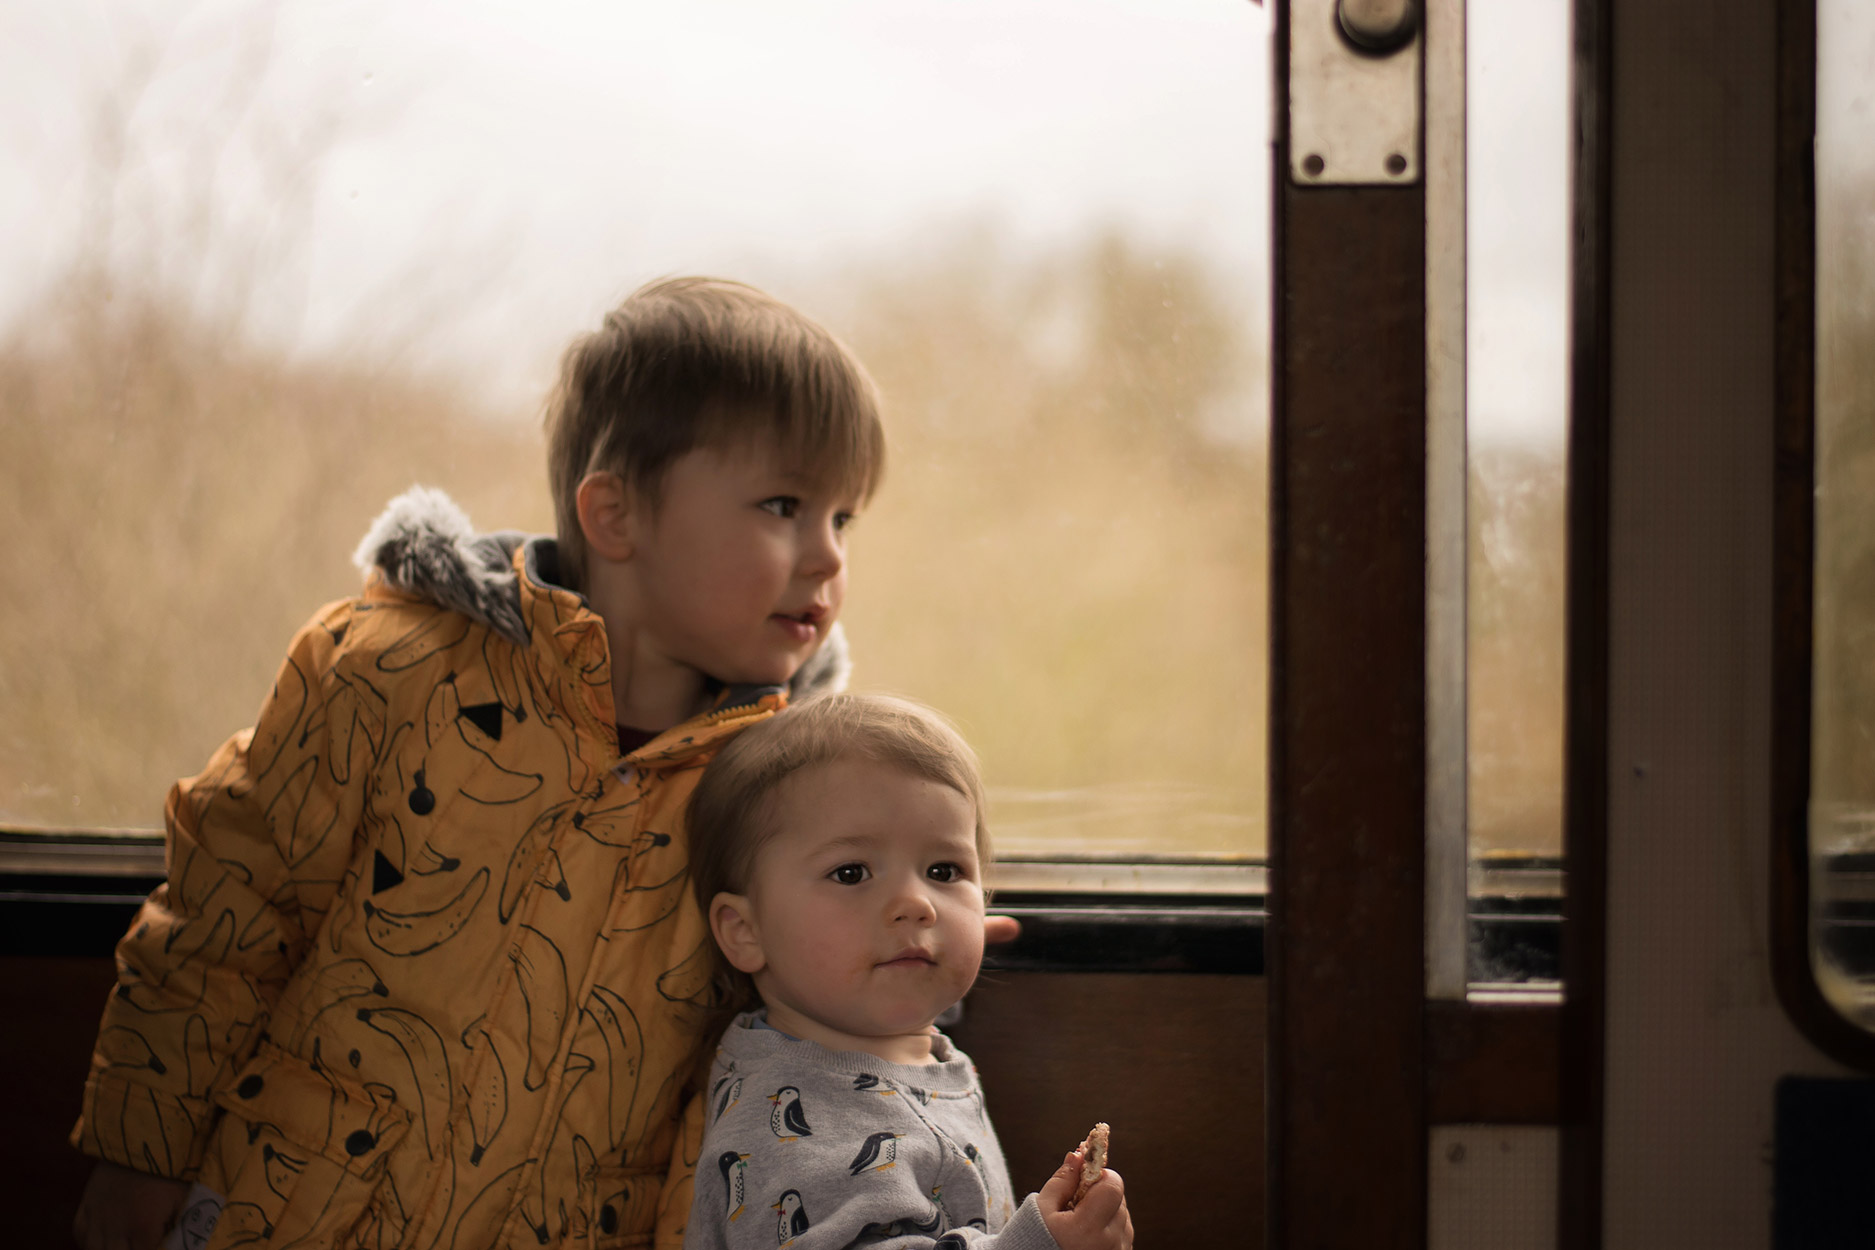 Young family of two boys and grandparents on the Blunsdon and Cricklade railway for the Easter Eggspress, playing in the old steam train carriages and wearing Frugi penguins and Milk & Biscuits moon sweatshirt